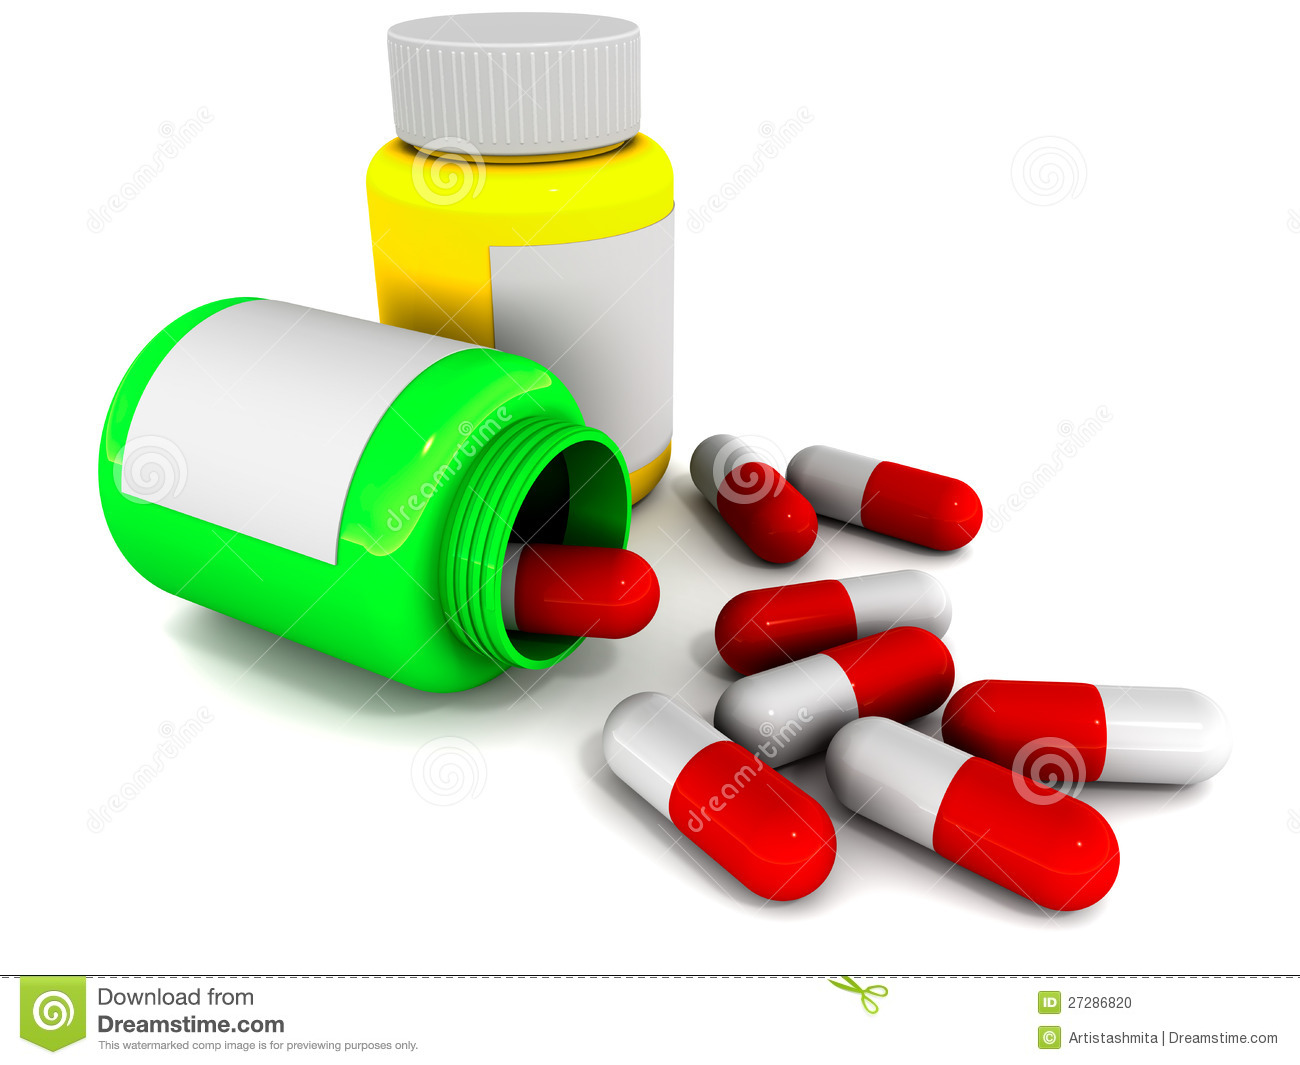 iPharmacy Pill ID & Drug Info - Android Apps on Google Play